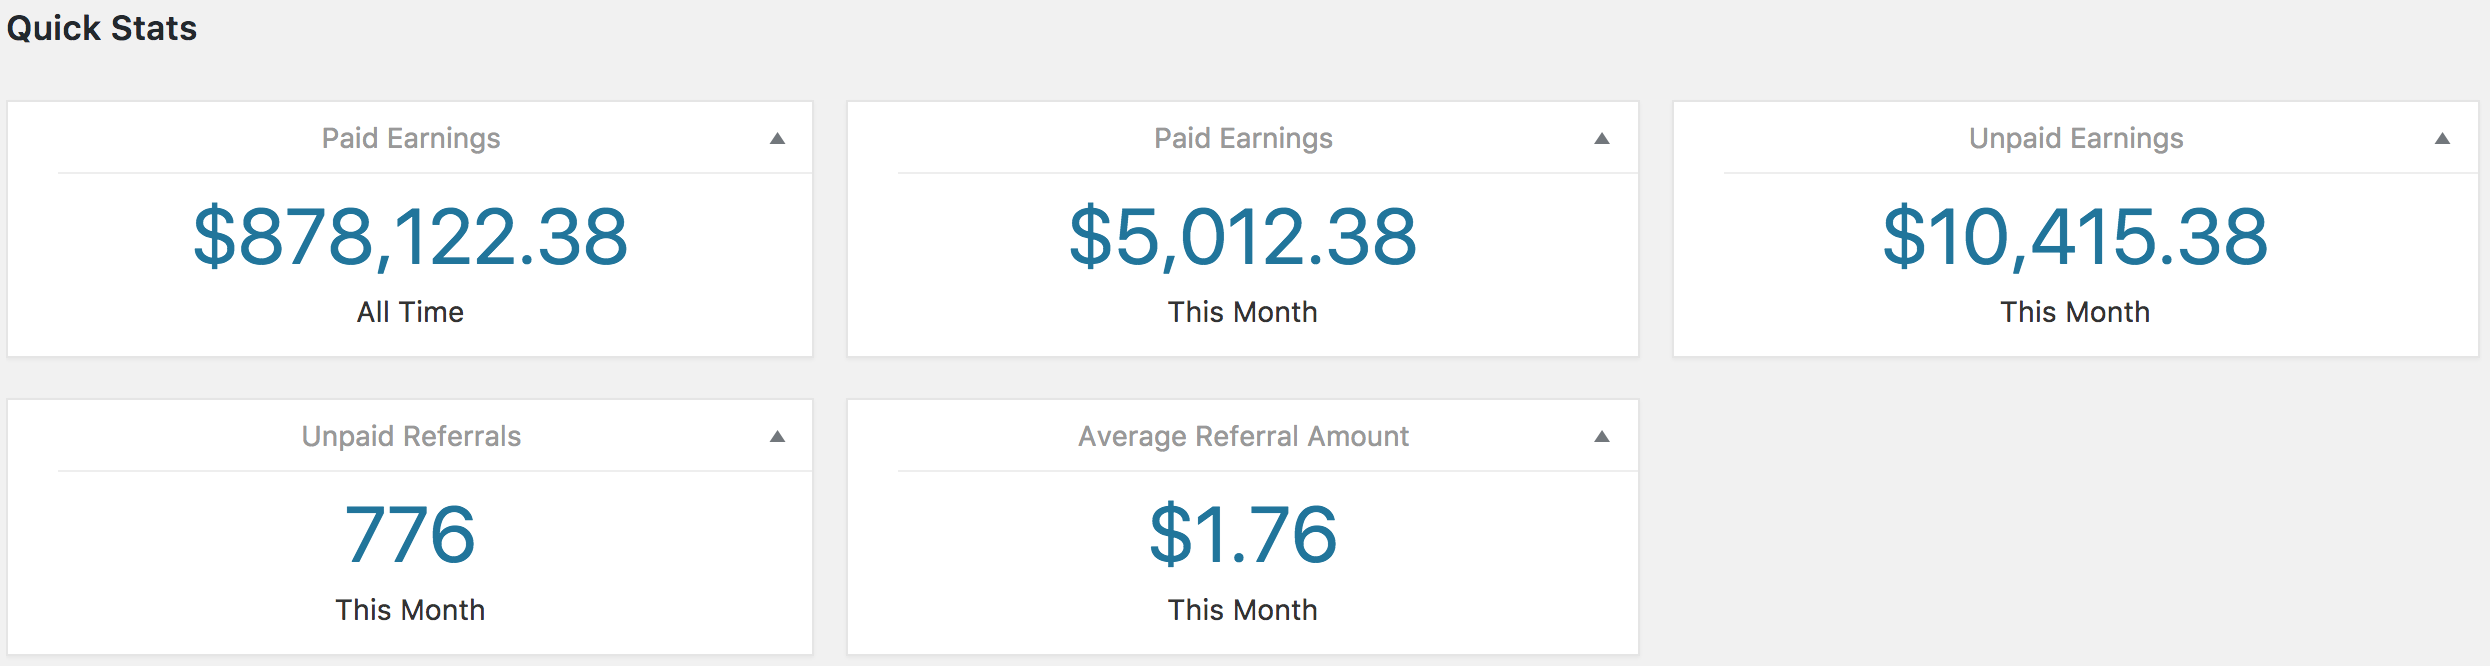 An example of Quick Stats available in the Referrals tab of the Reports section in AffiliateWP.